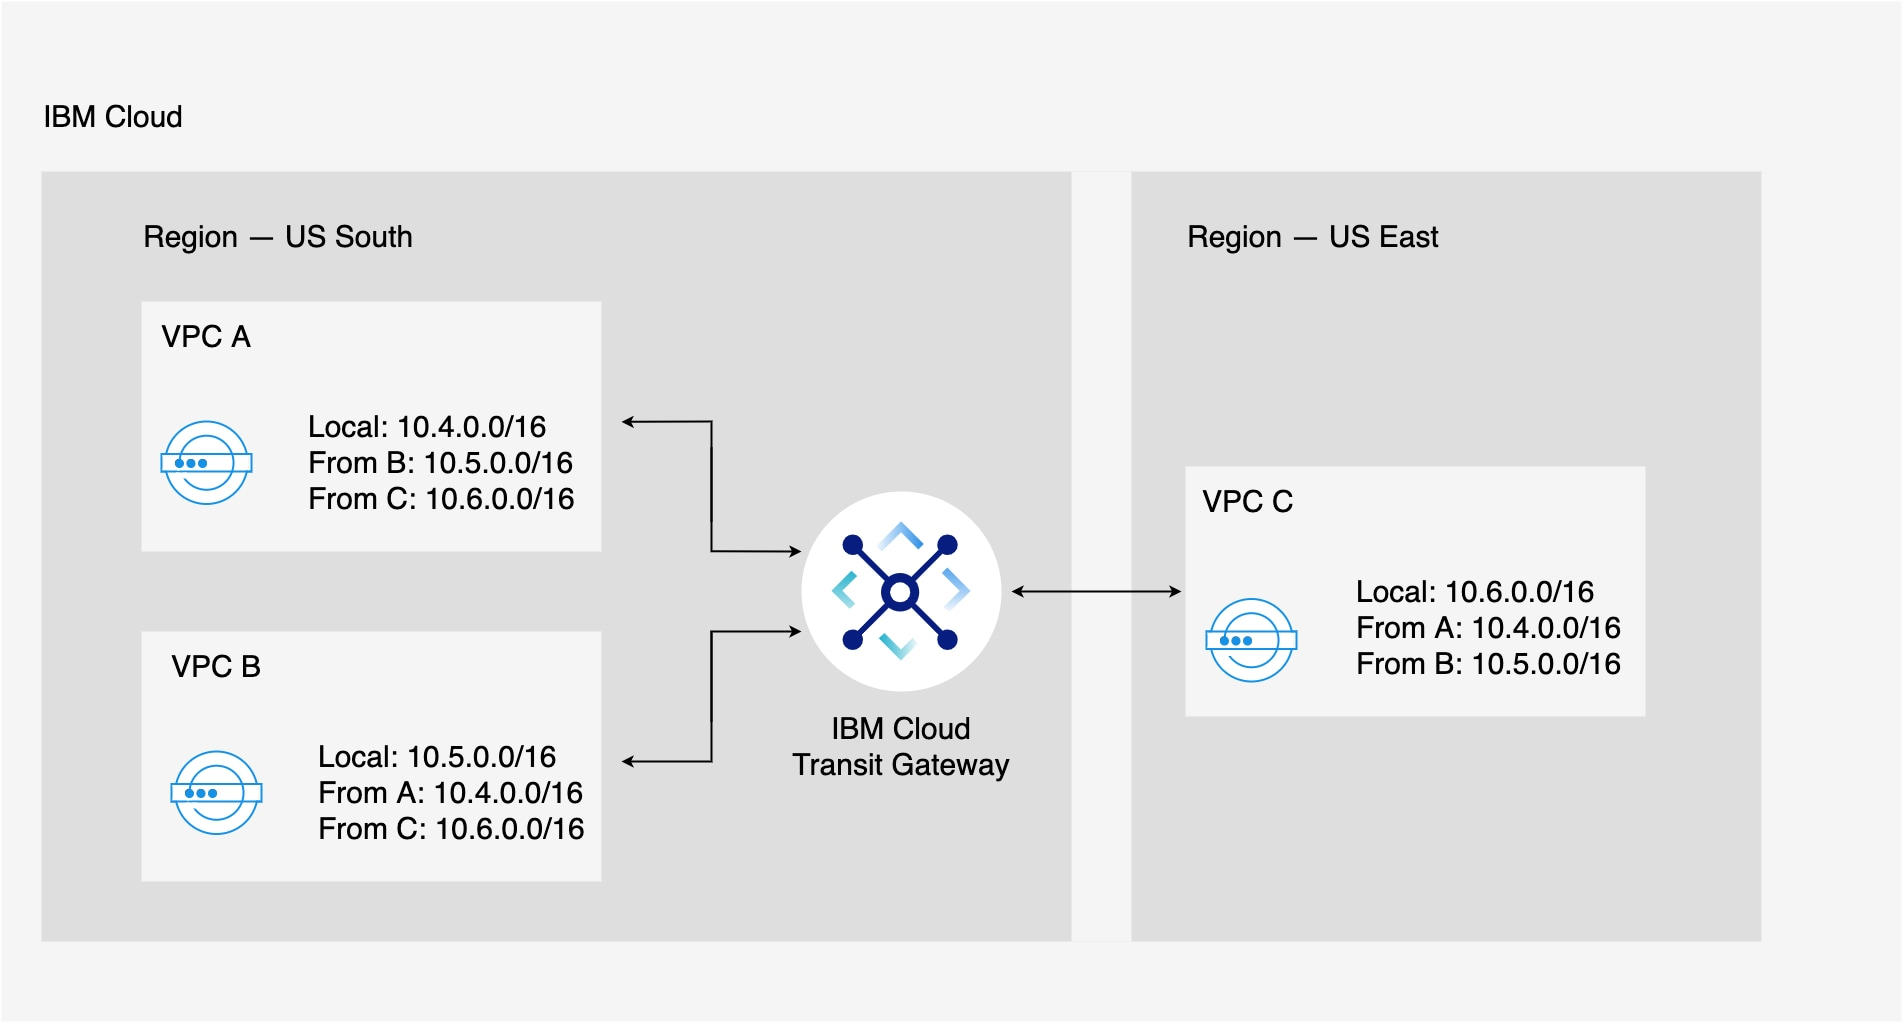 Flowchart showing routing between multiple global VPCs through IBM Cloud Transit Gateway